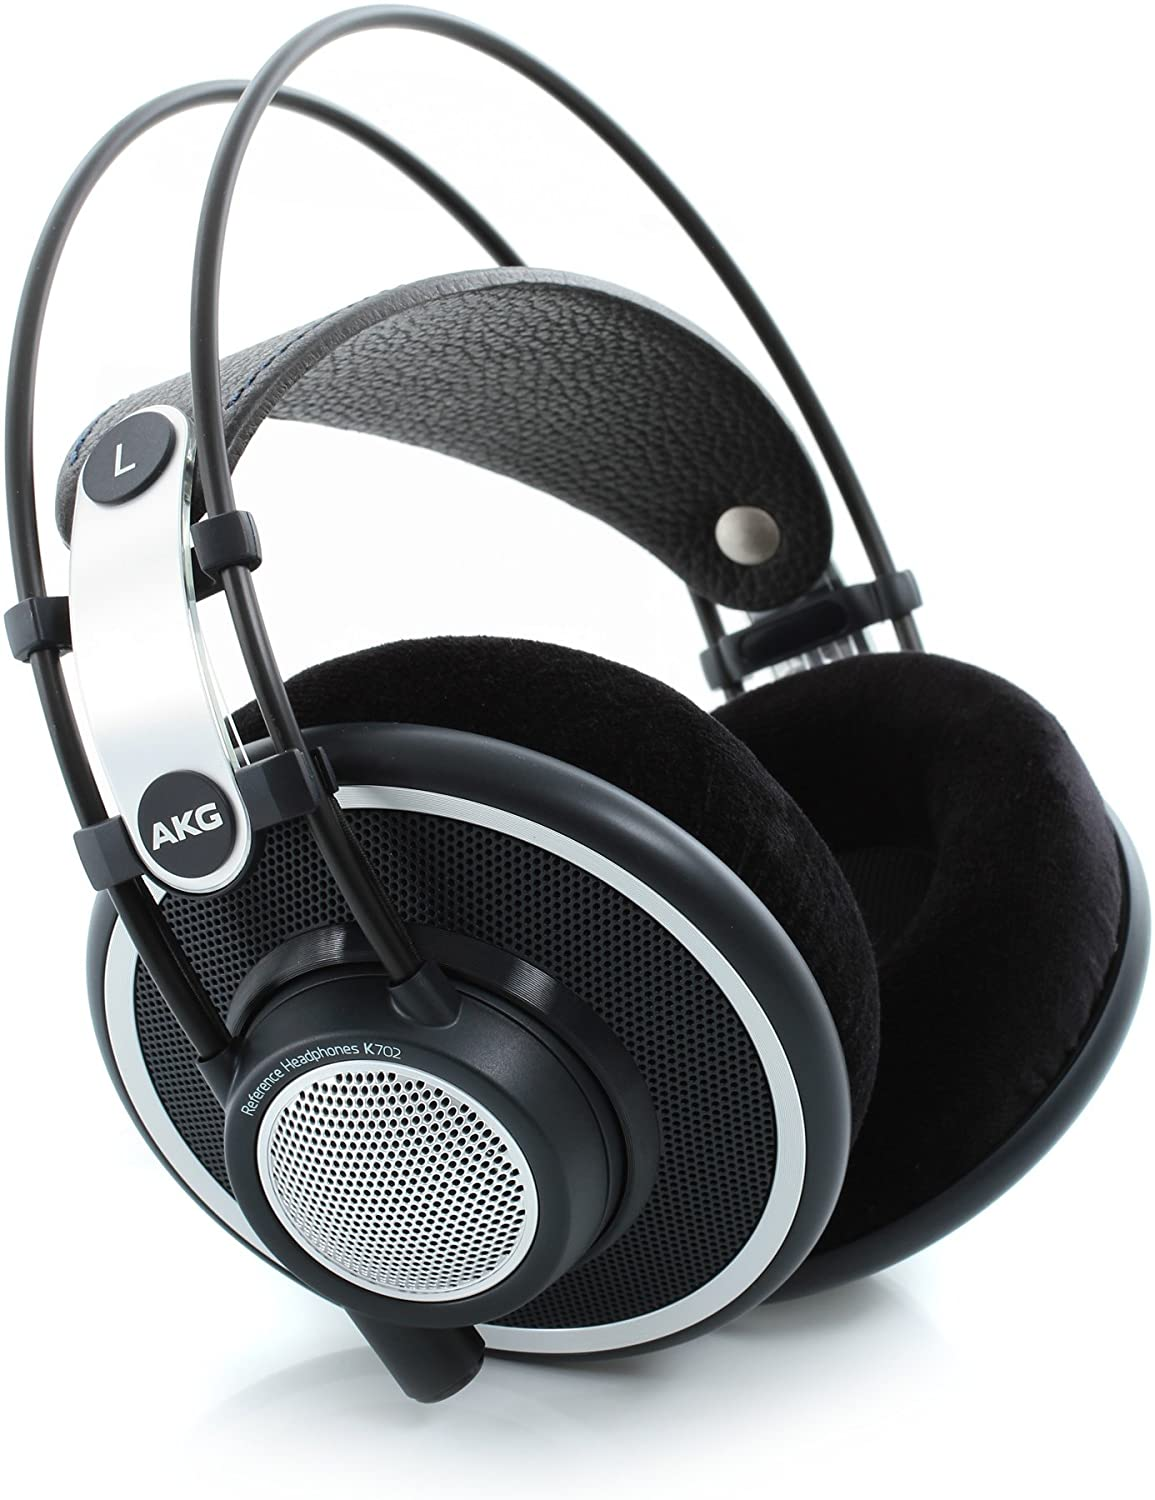 76485793ae0 AKG K702 Open-Back Over-Ear Premium Studio Reference Headphones:  Amazon.co.uk: Musical Instruments